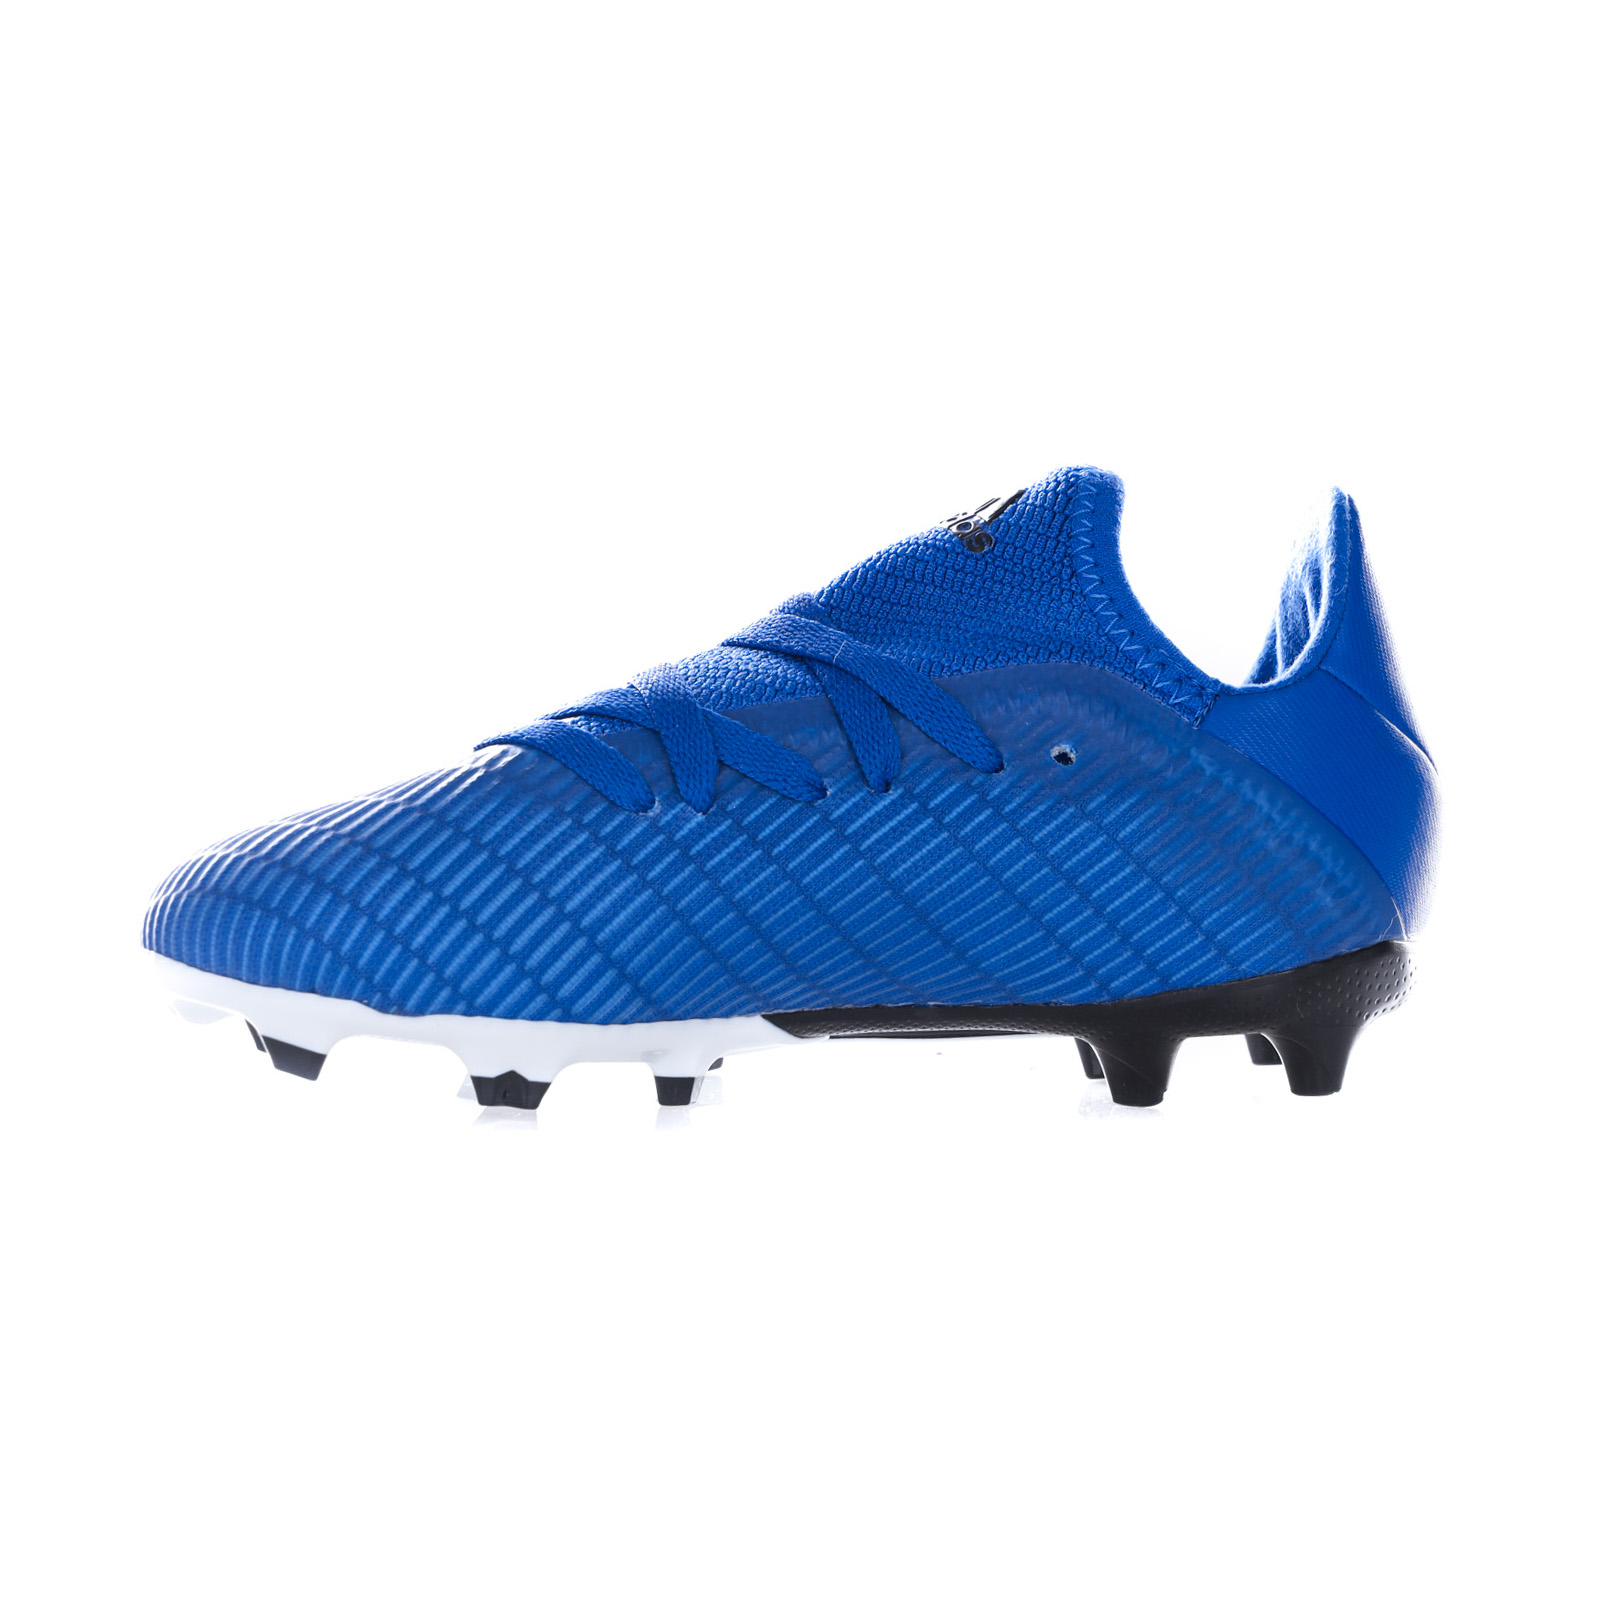 ADIDAS | Football boot | EG7152ROYBLU/FTWWHT